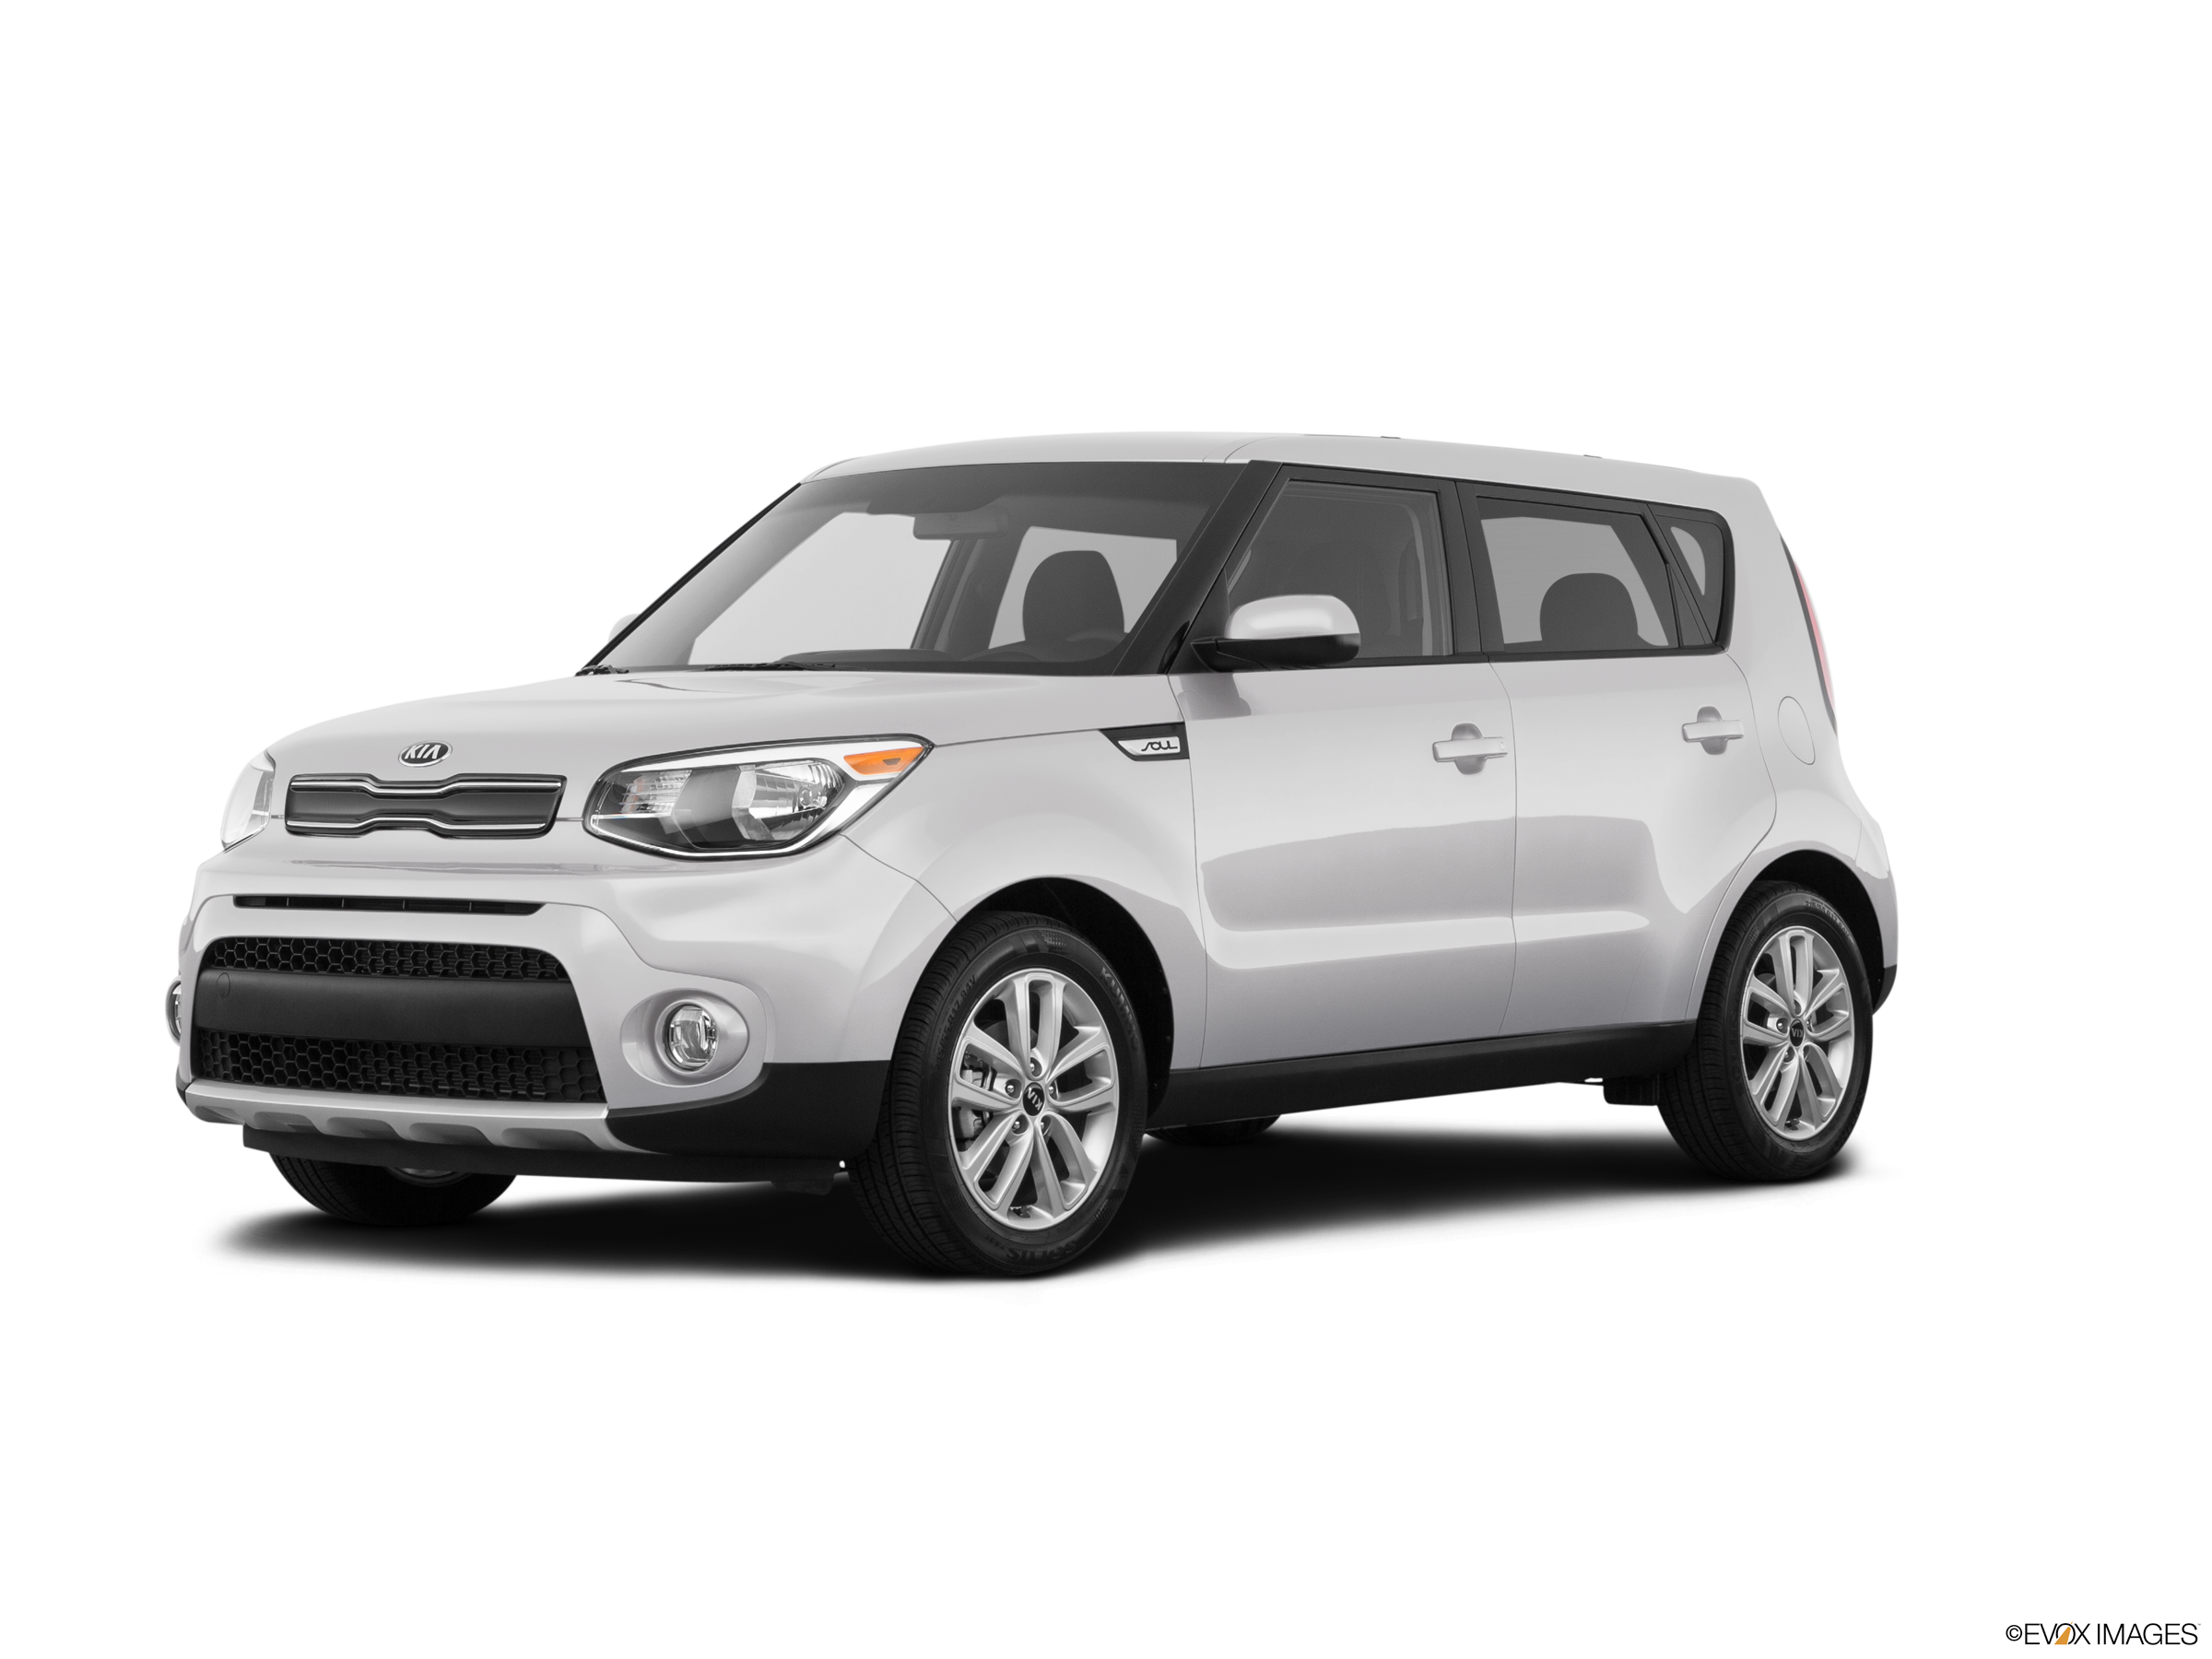 Most Popular Wagons of 2018 - 2018 Kia Soul